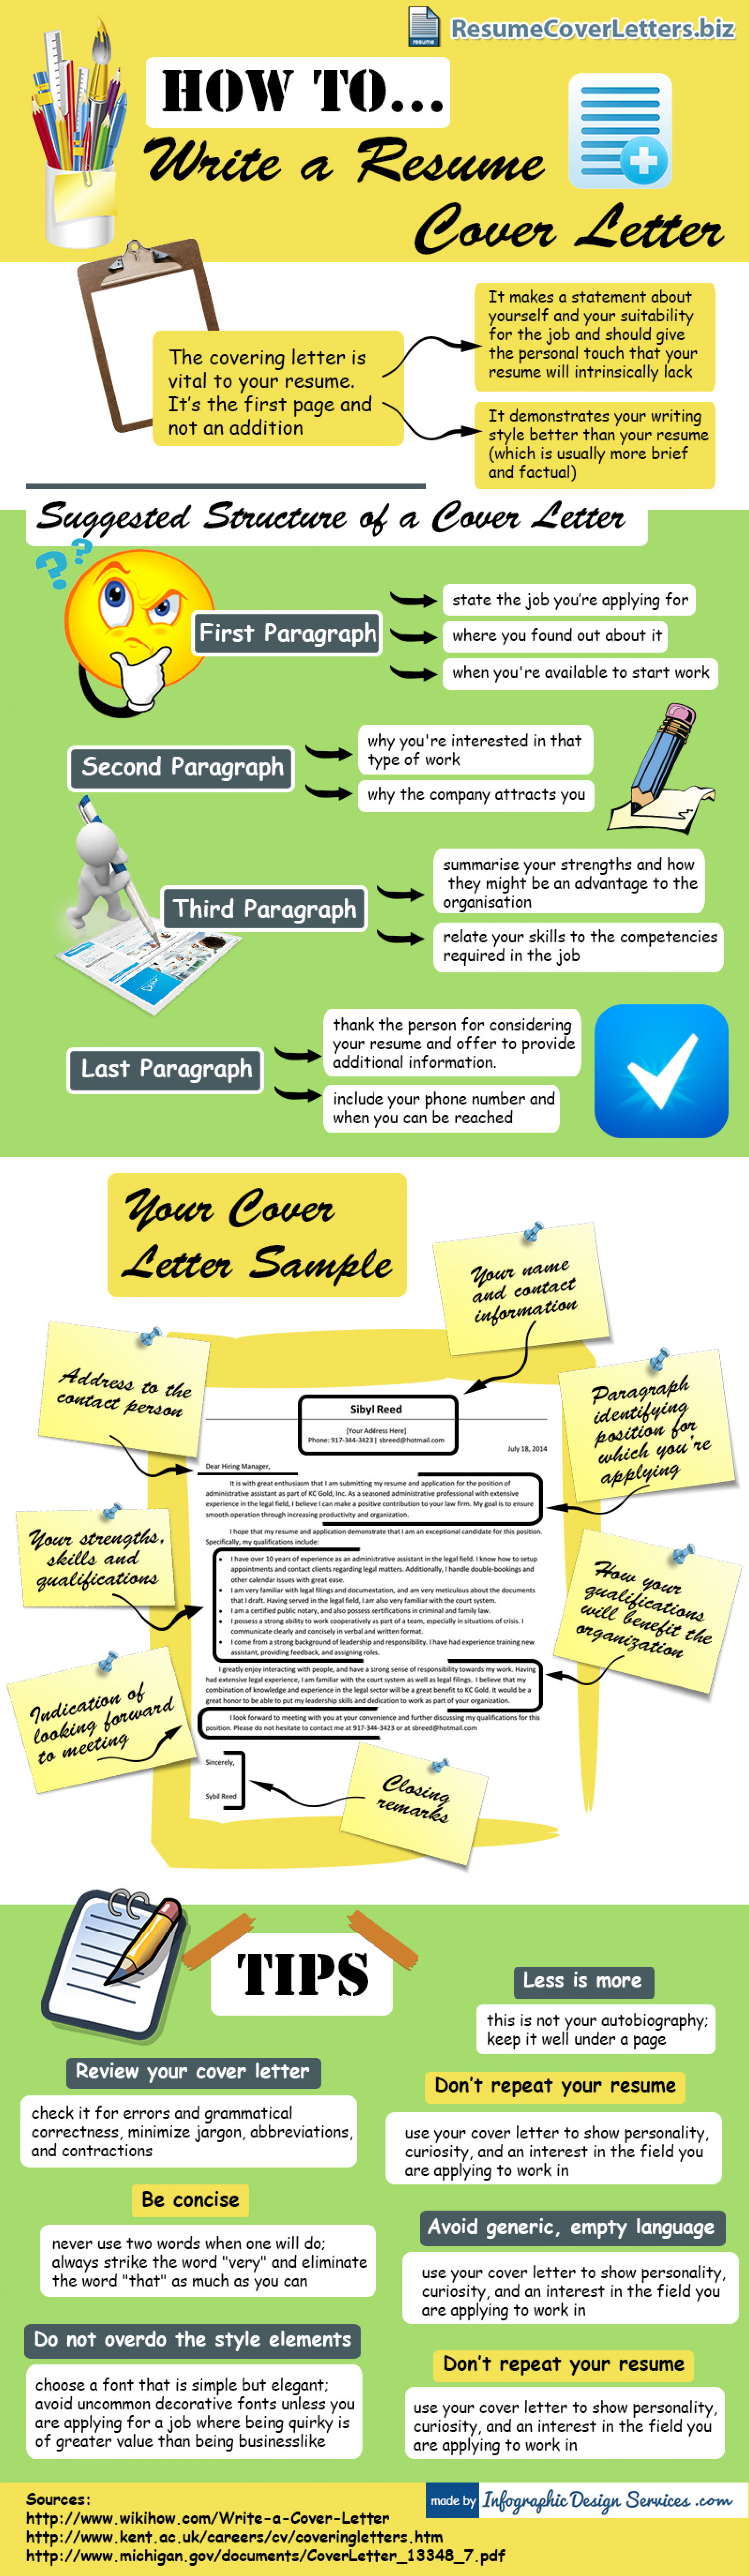 resume cover letter writing tips infographic - Tips On Writing Resume